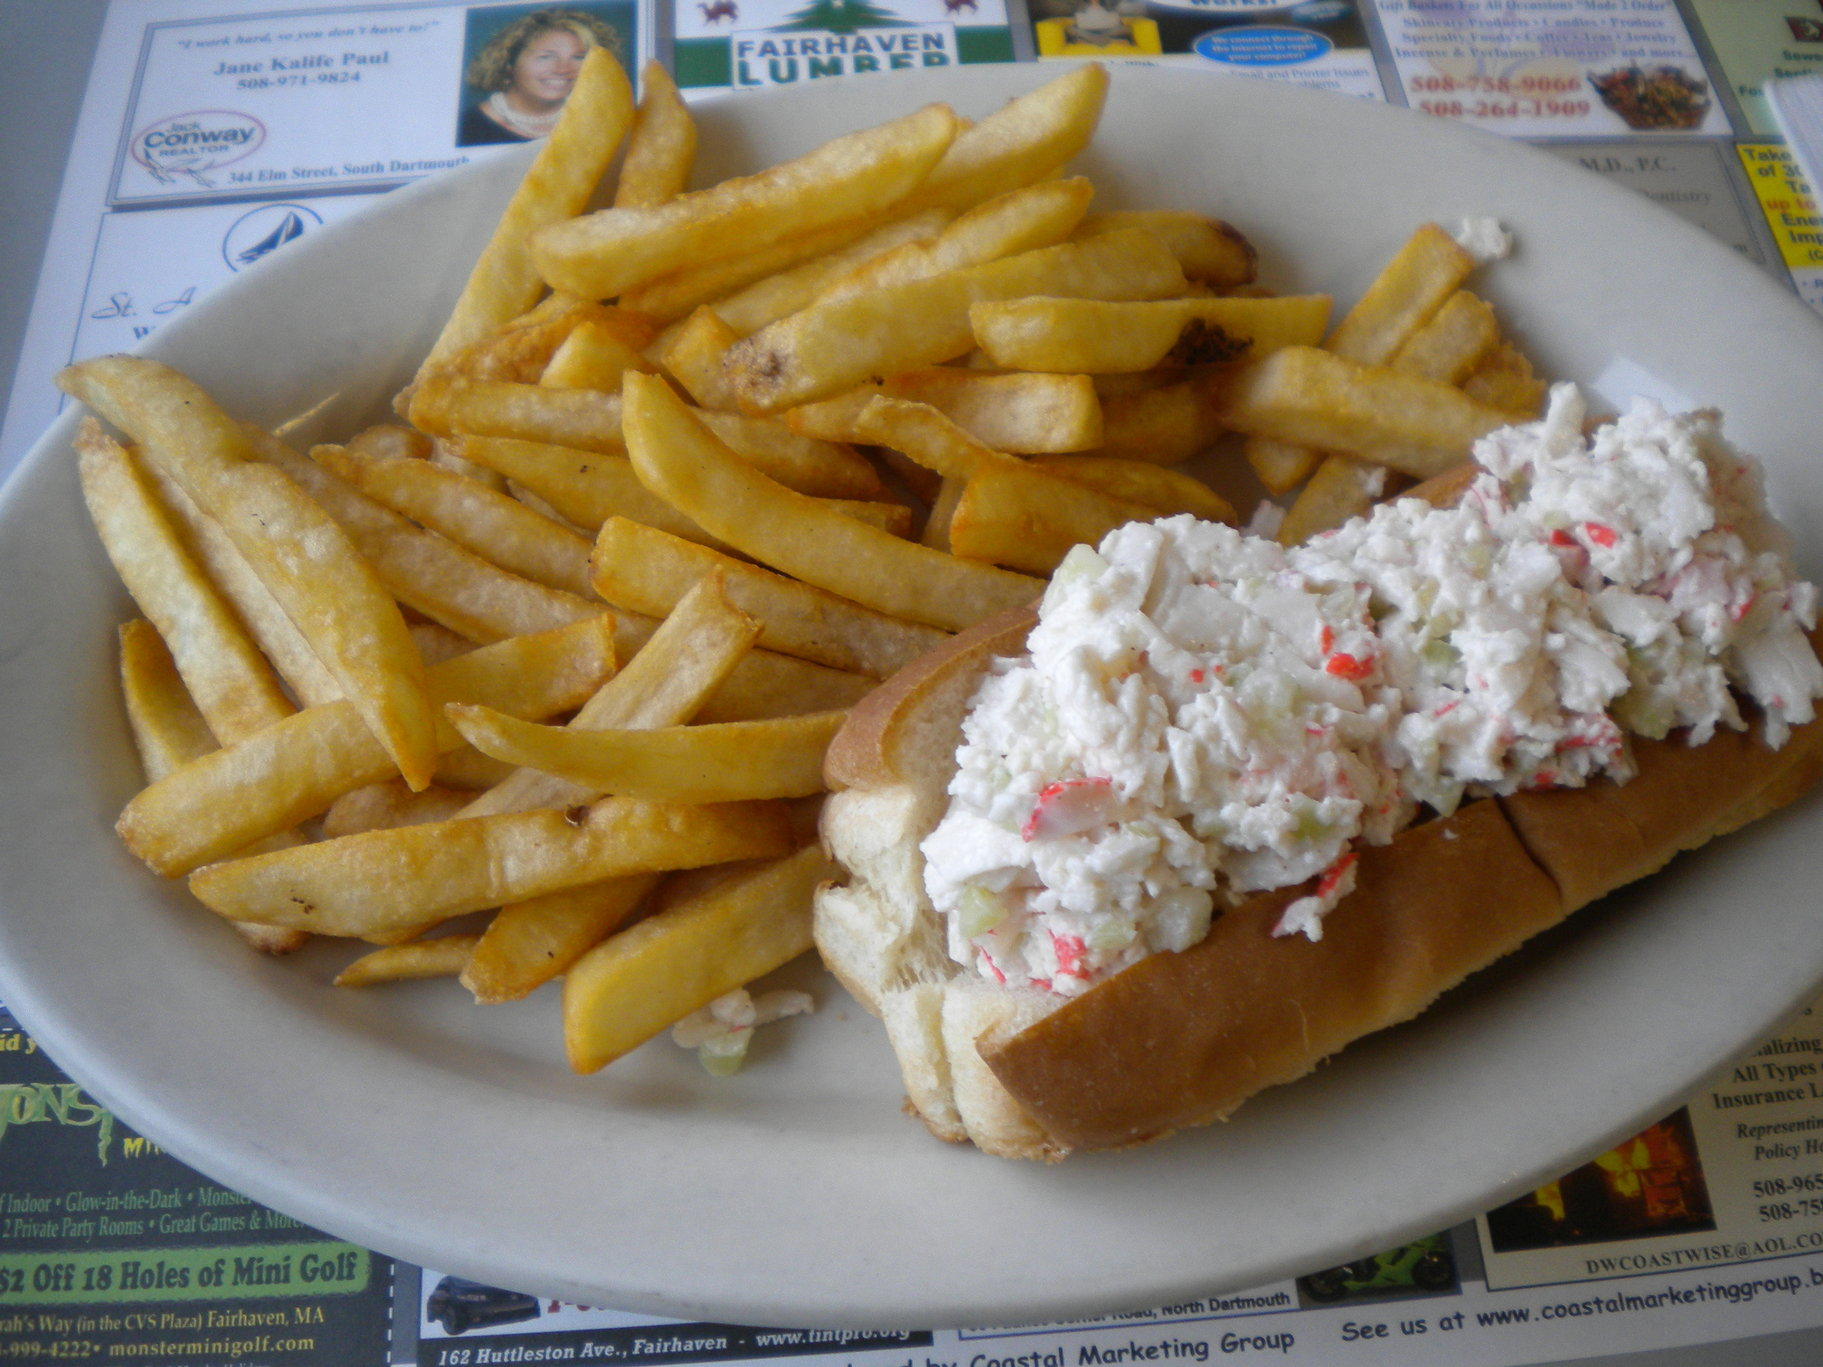 Category: Best of the South Coast - New Bedford Guide